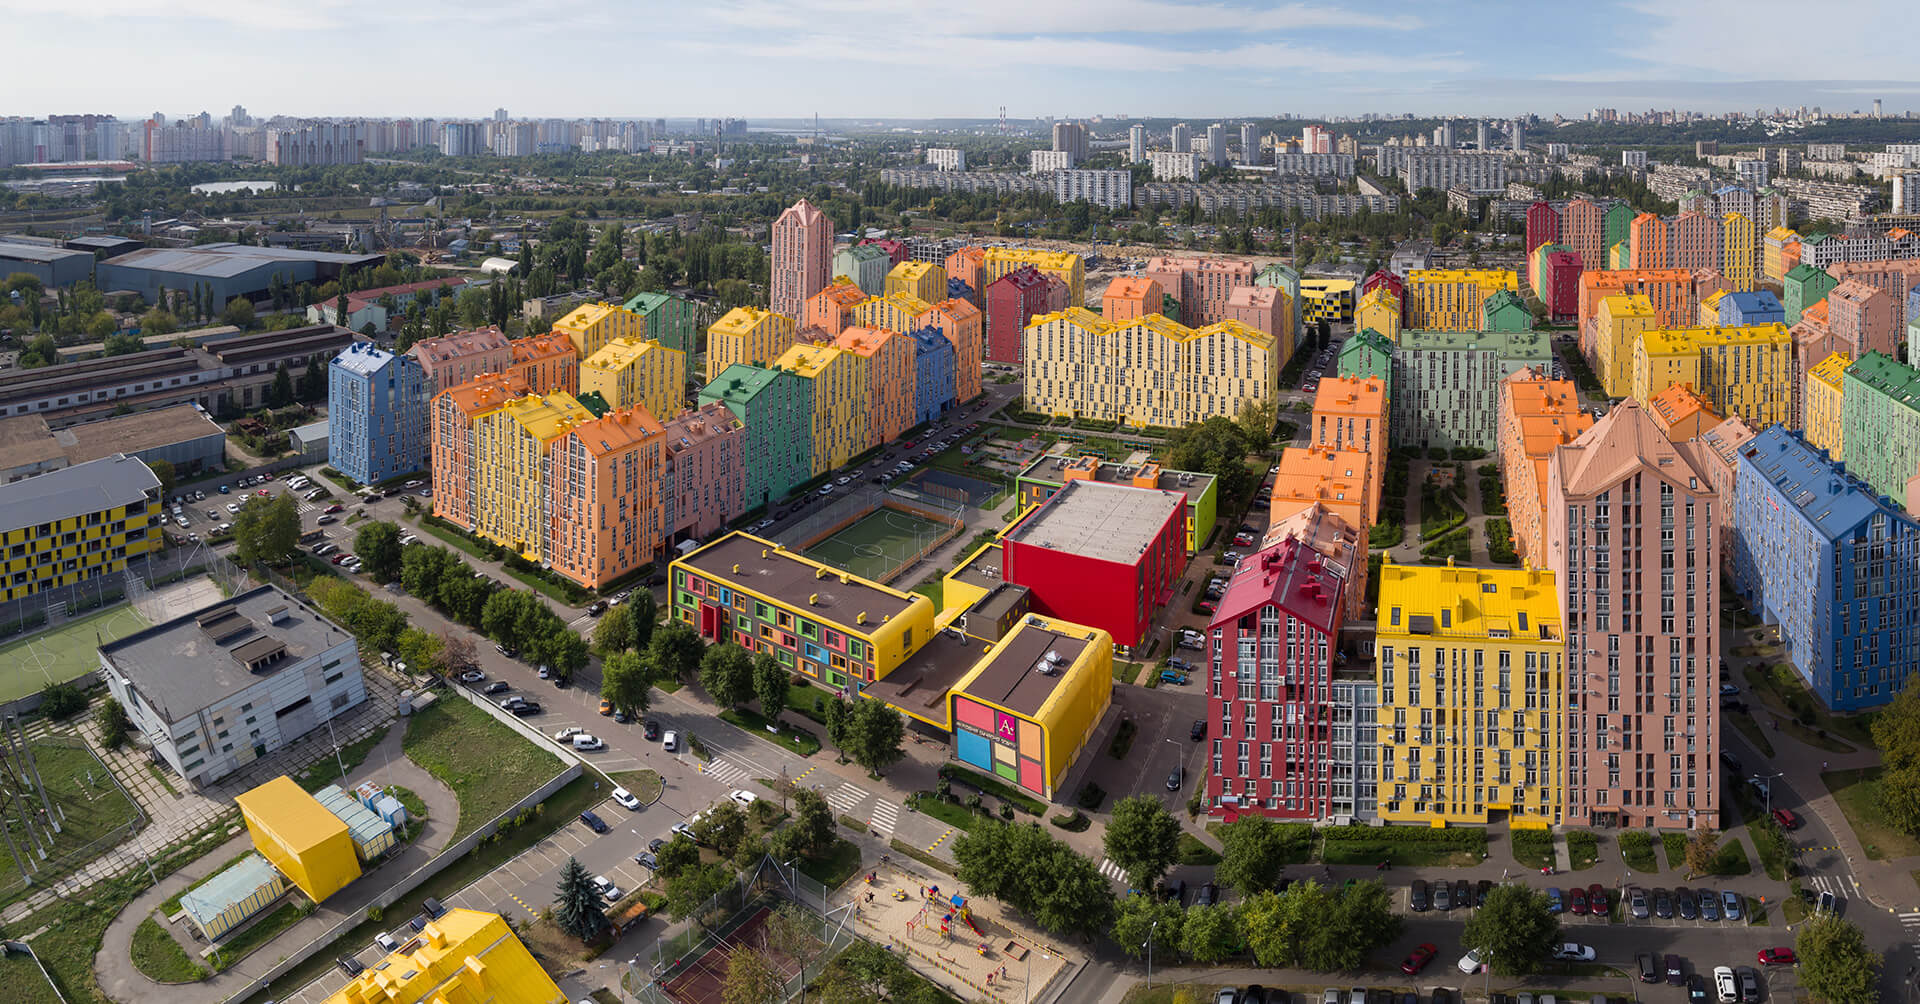 Block development principle has been applied for the first time in Ukraine | Comfort Town | Archimatika | STIRworld